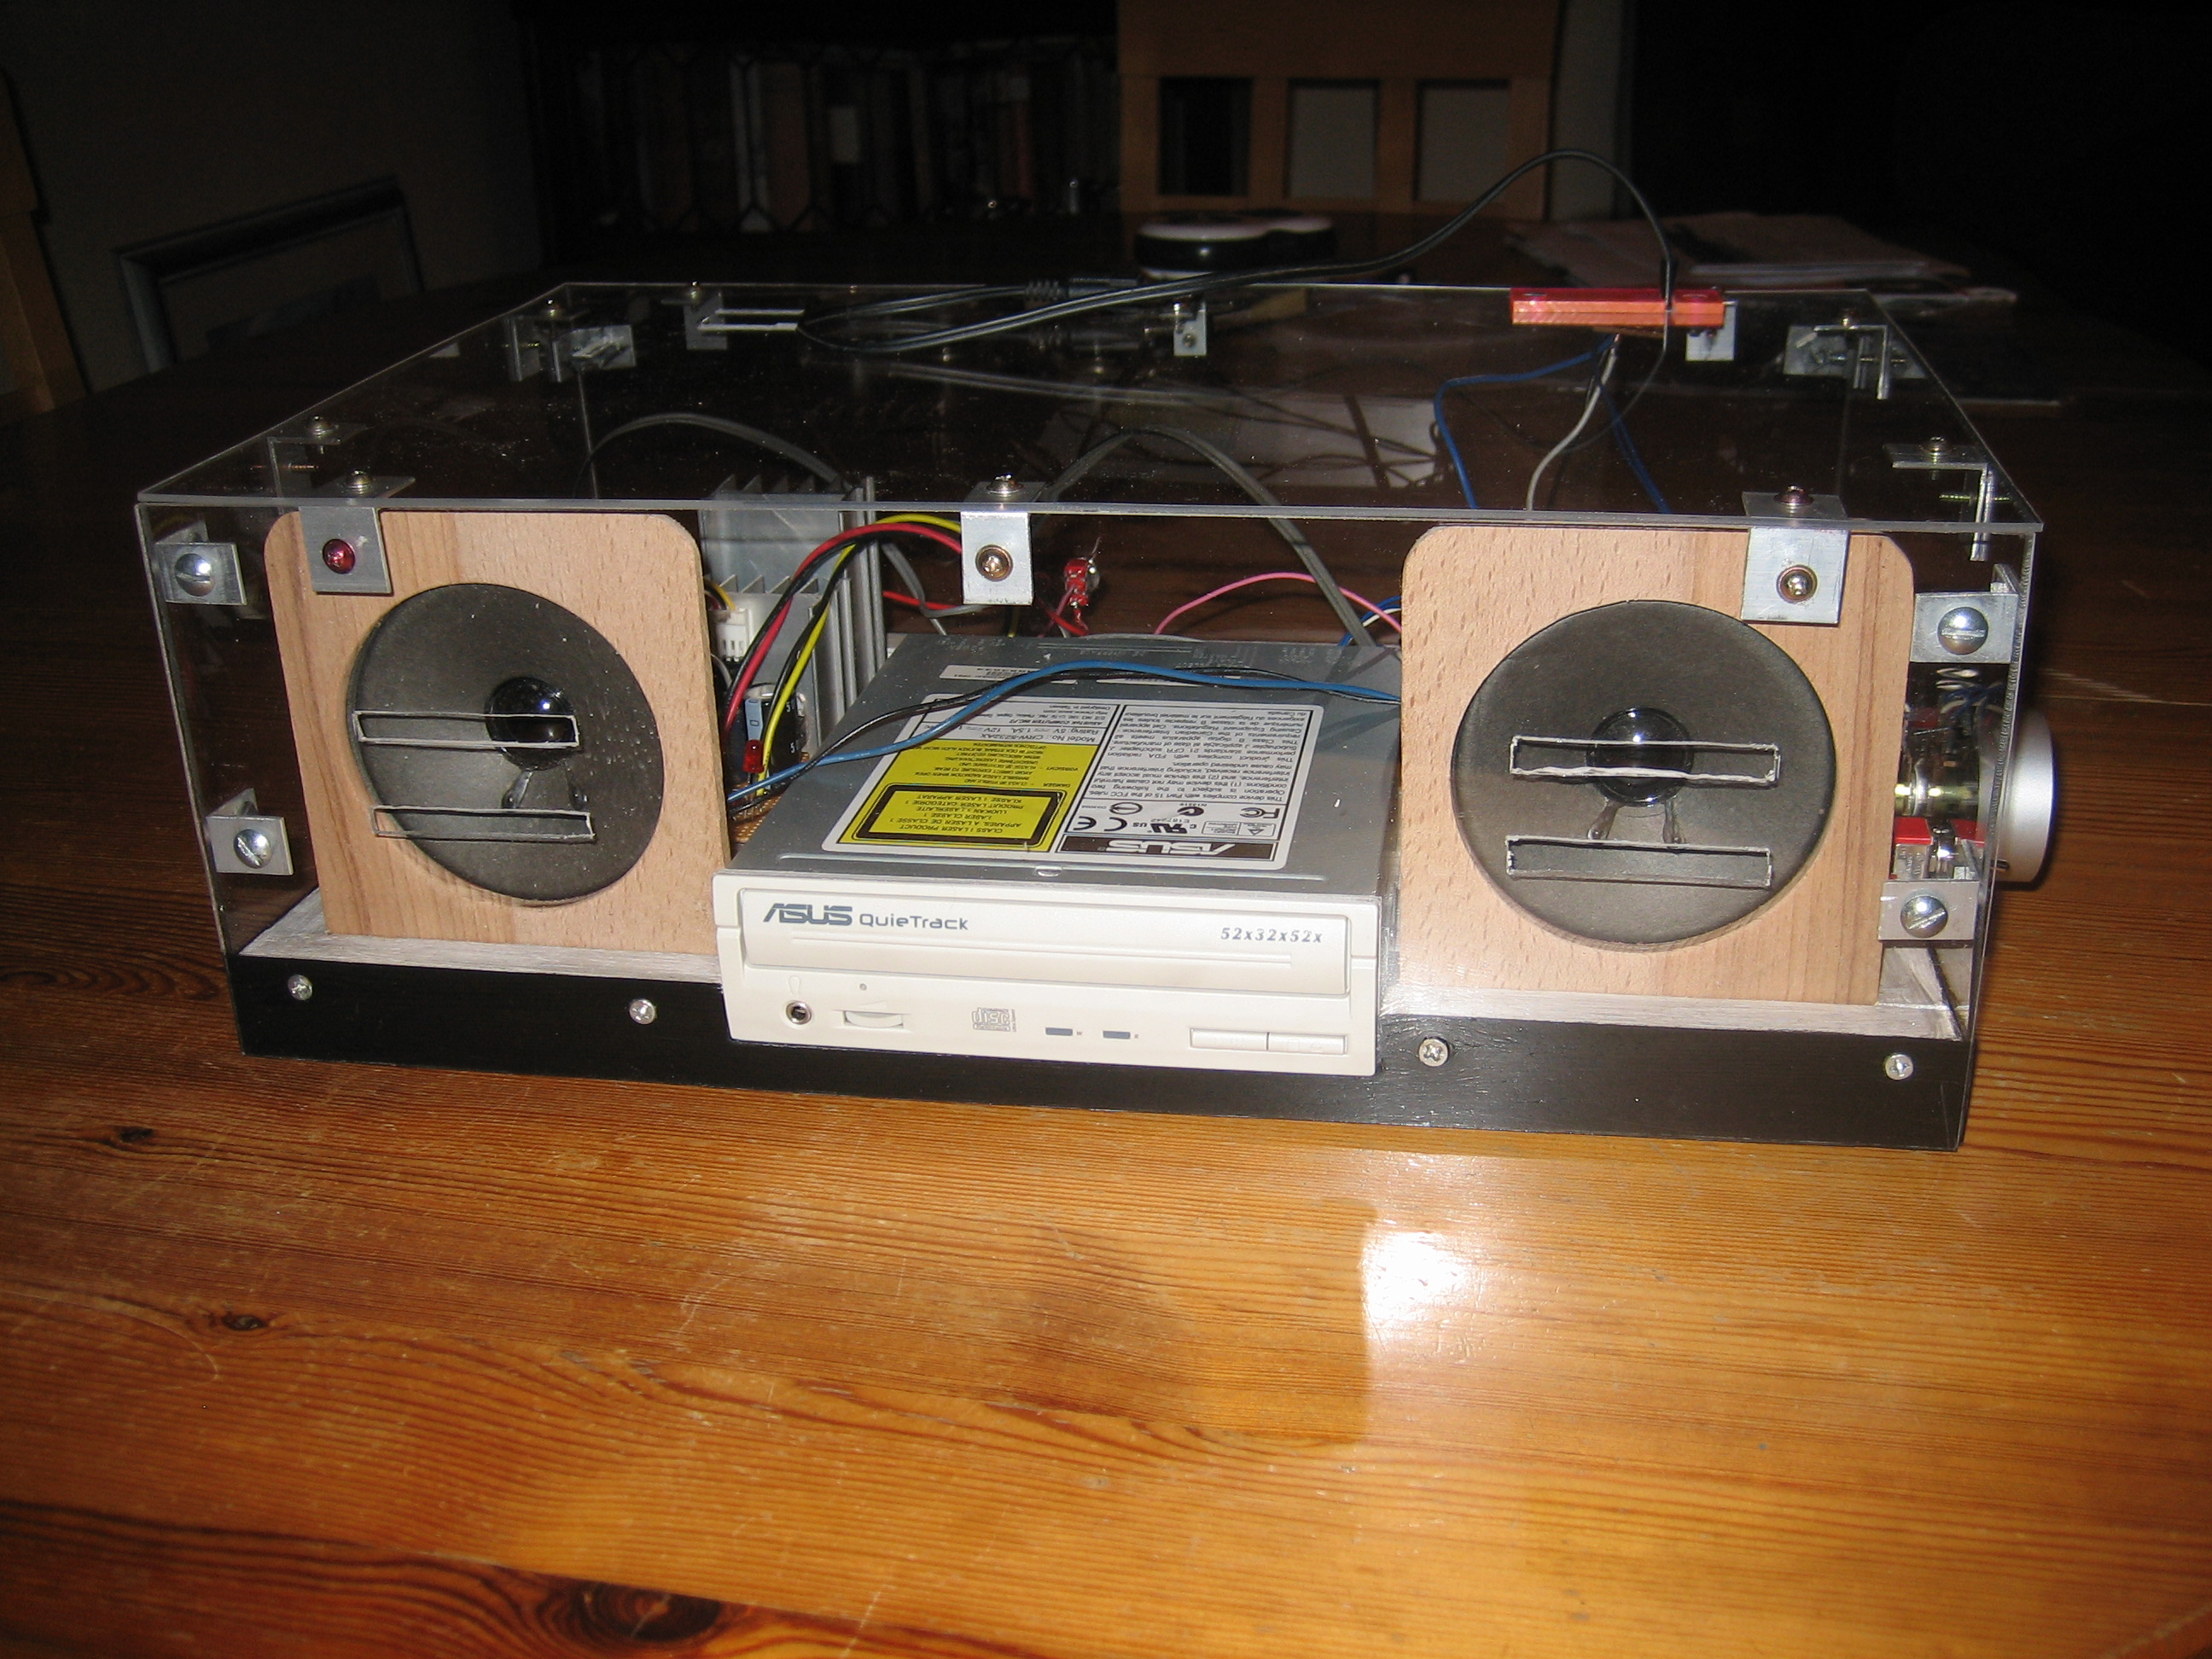 Picture of CD Player From Old CDROM